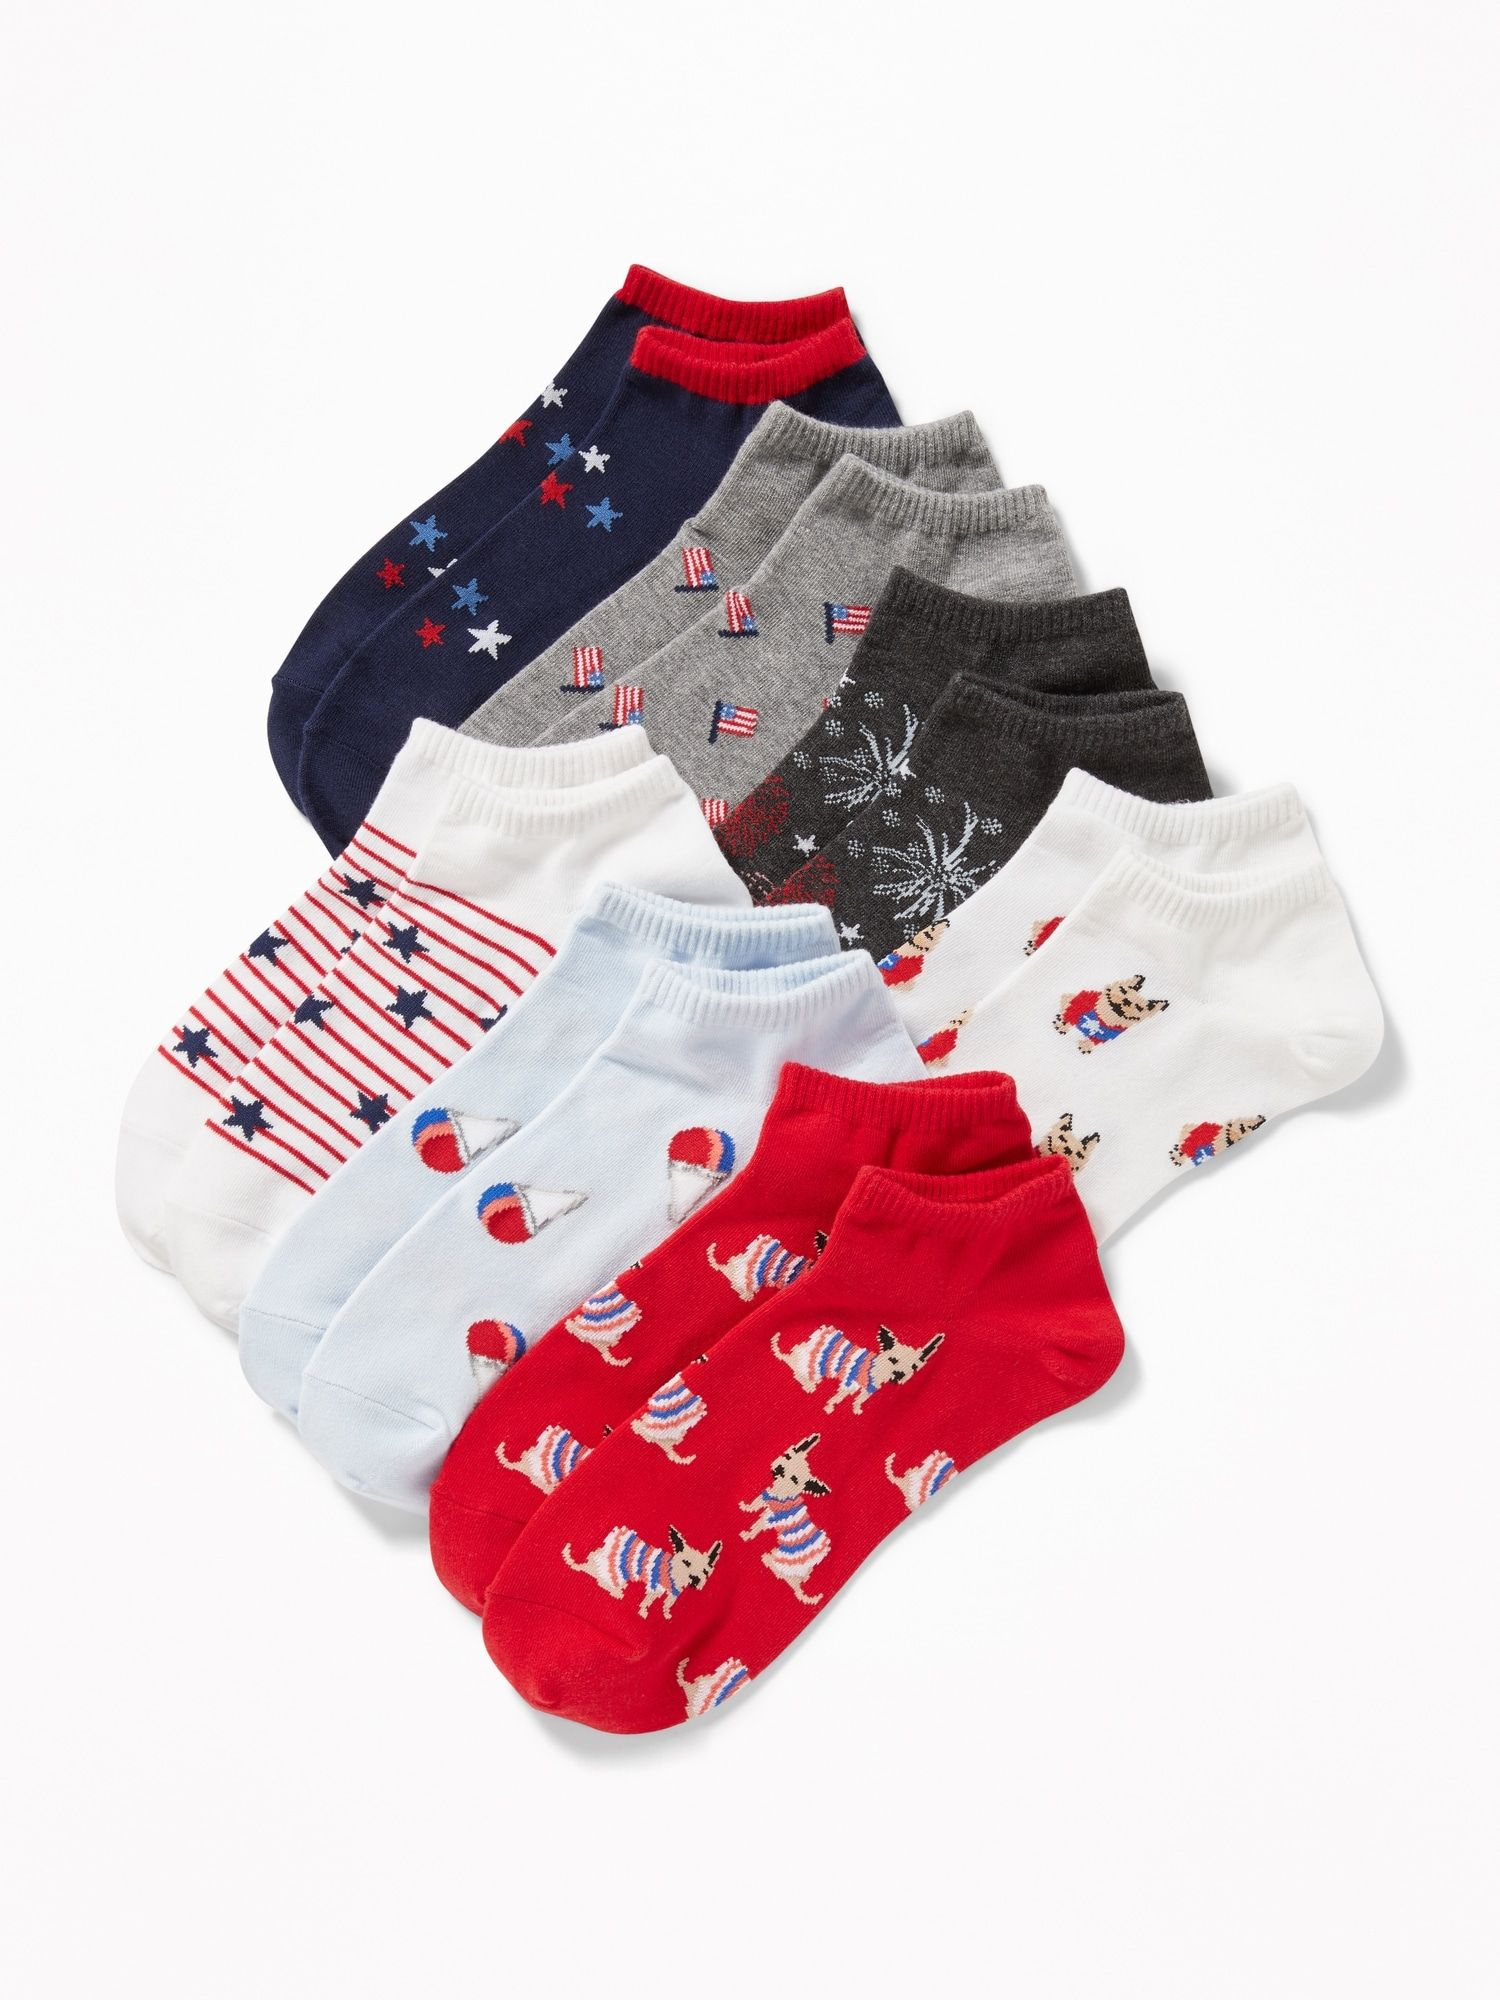 b261c33ccb4 Printed Ankle Socks 7-Pack for Women in 2019